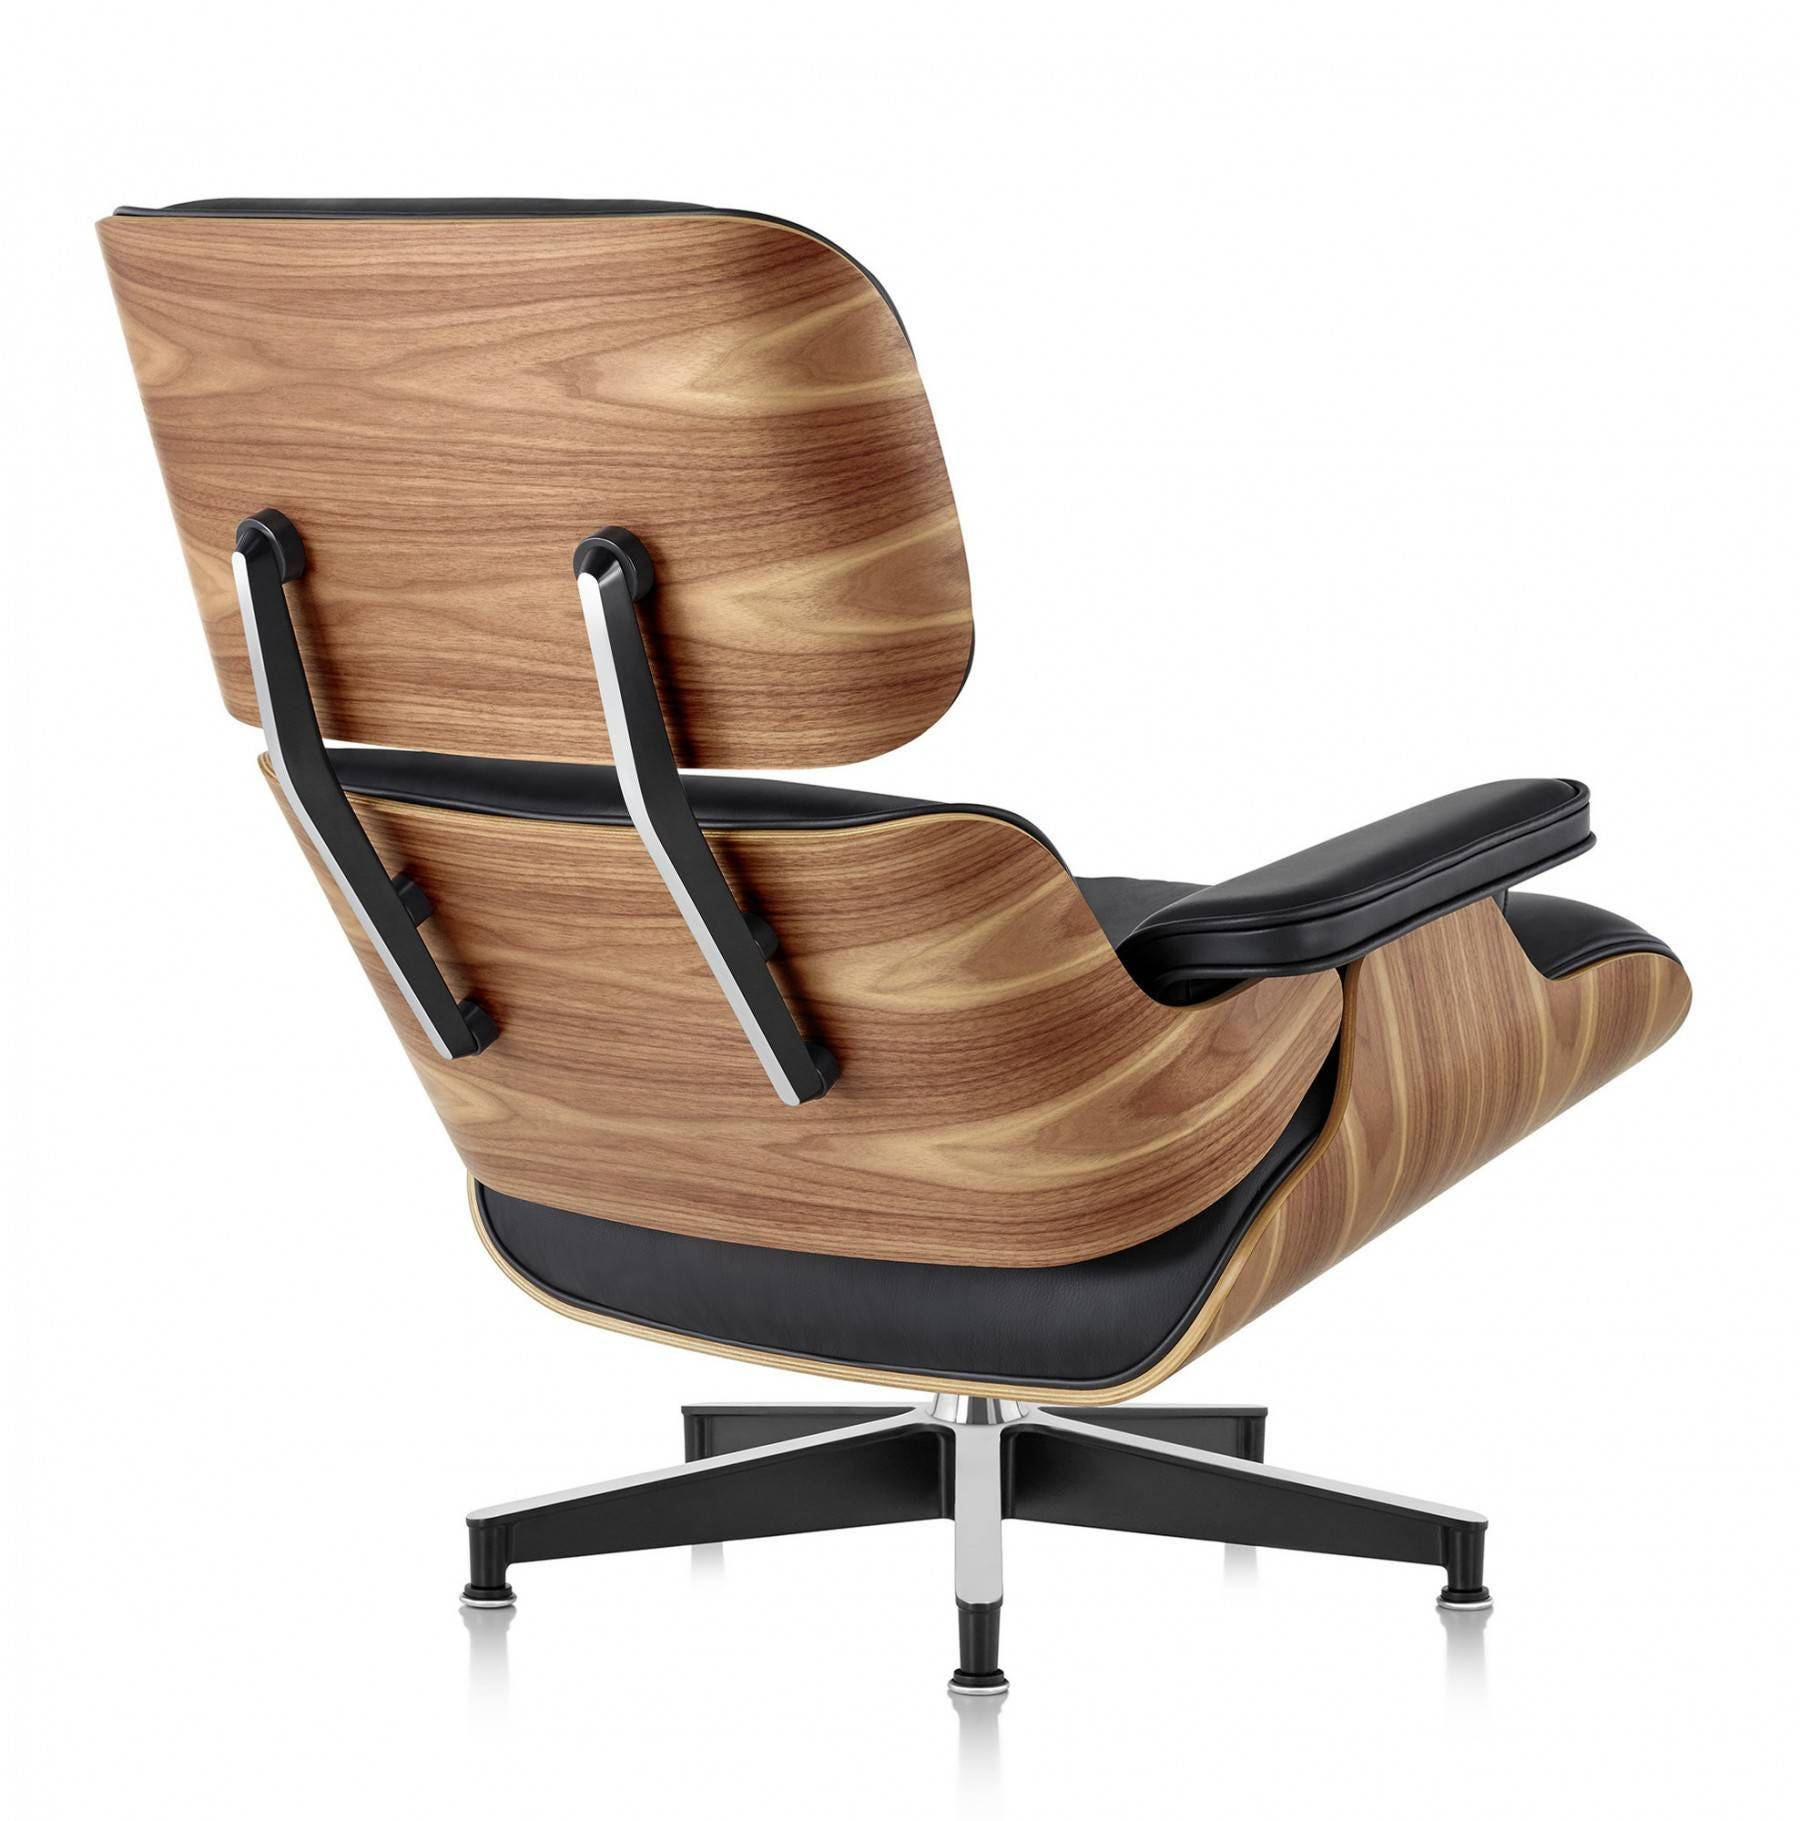 Swell Herman Miller Eames Lounge Chair Caraccident5 Cool Chair Designs And Ideas Caraccident5Info